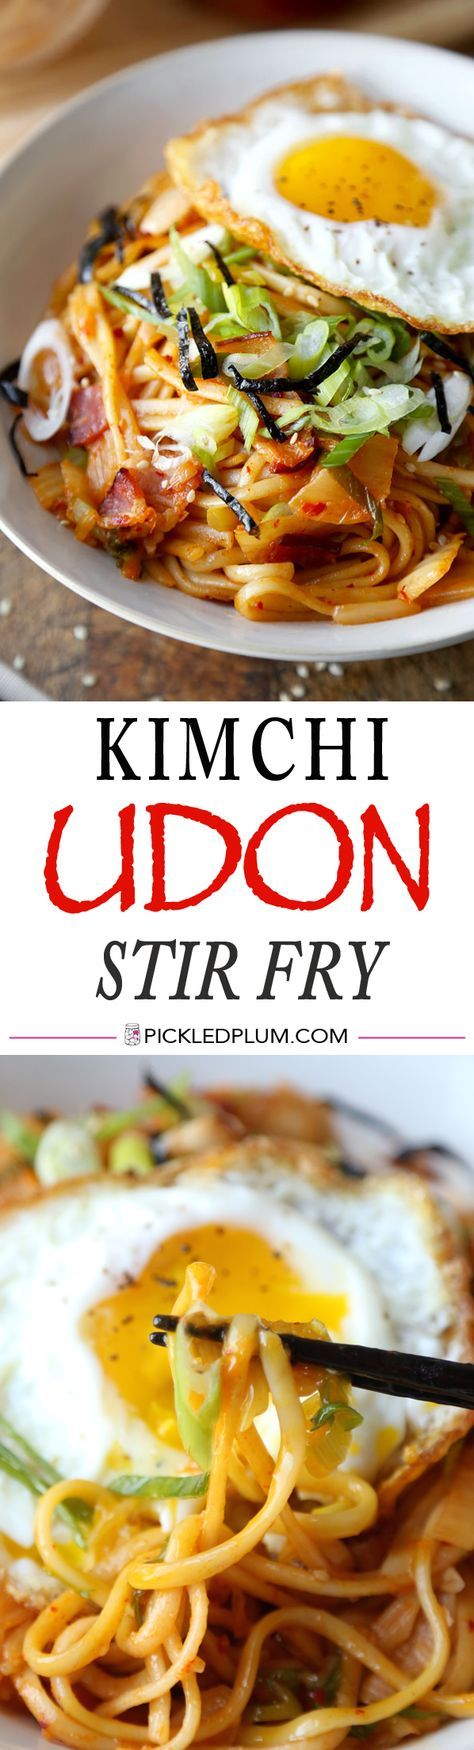 Kimchi Udon Stir Fry - Sizzling bacon and chewy udon noodles tossed in a tangy and spicy kimchi sauce - ready in 15 minutes! Recipe, noodles, spicy, easy, Korean   pickleplum.com